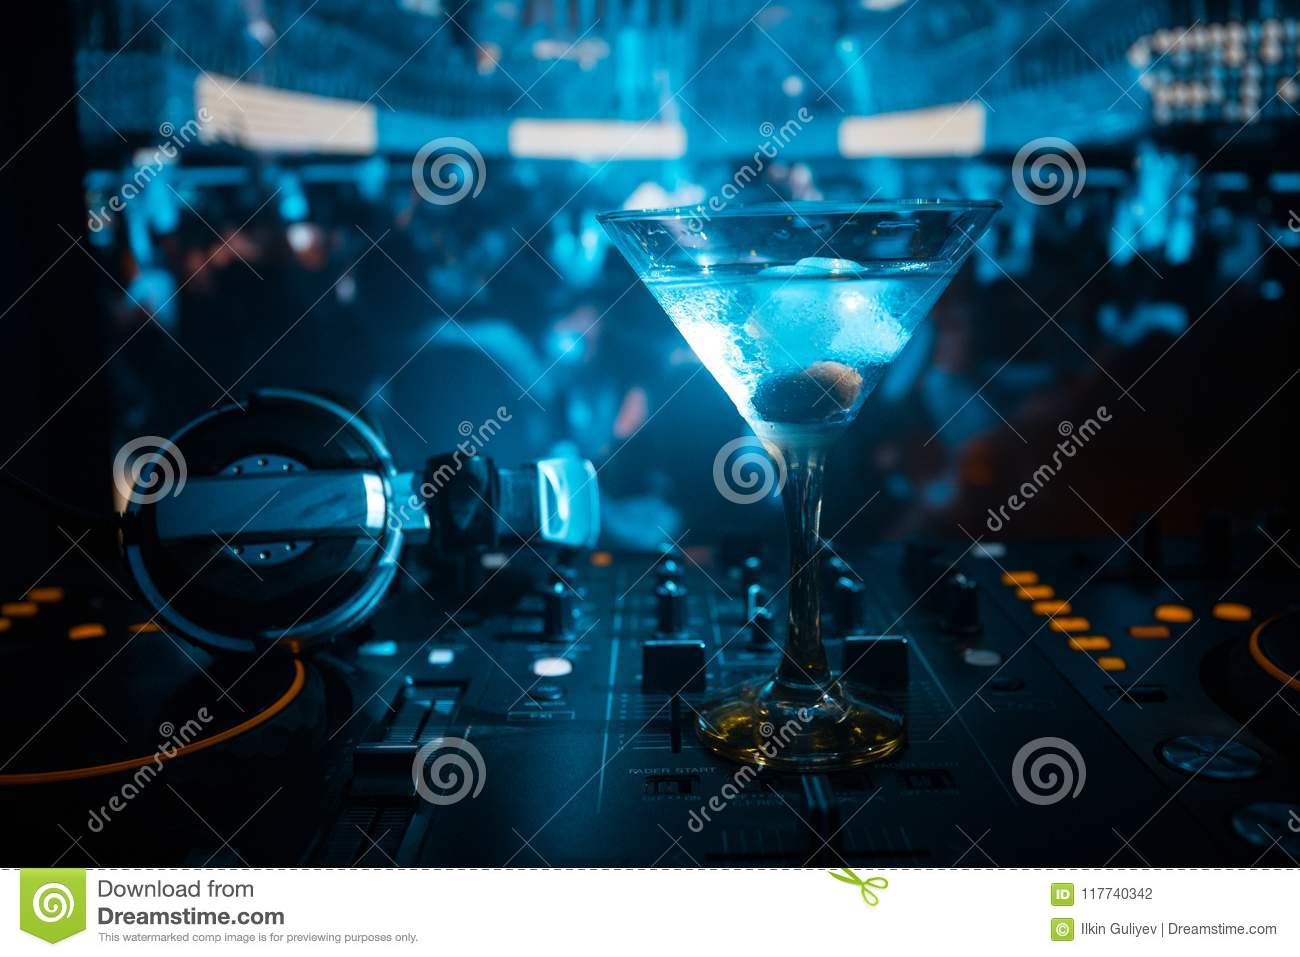 Glass with martini with olive inside on dj controller in night club. Dj Console with club drink at music party in nightclub with d